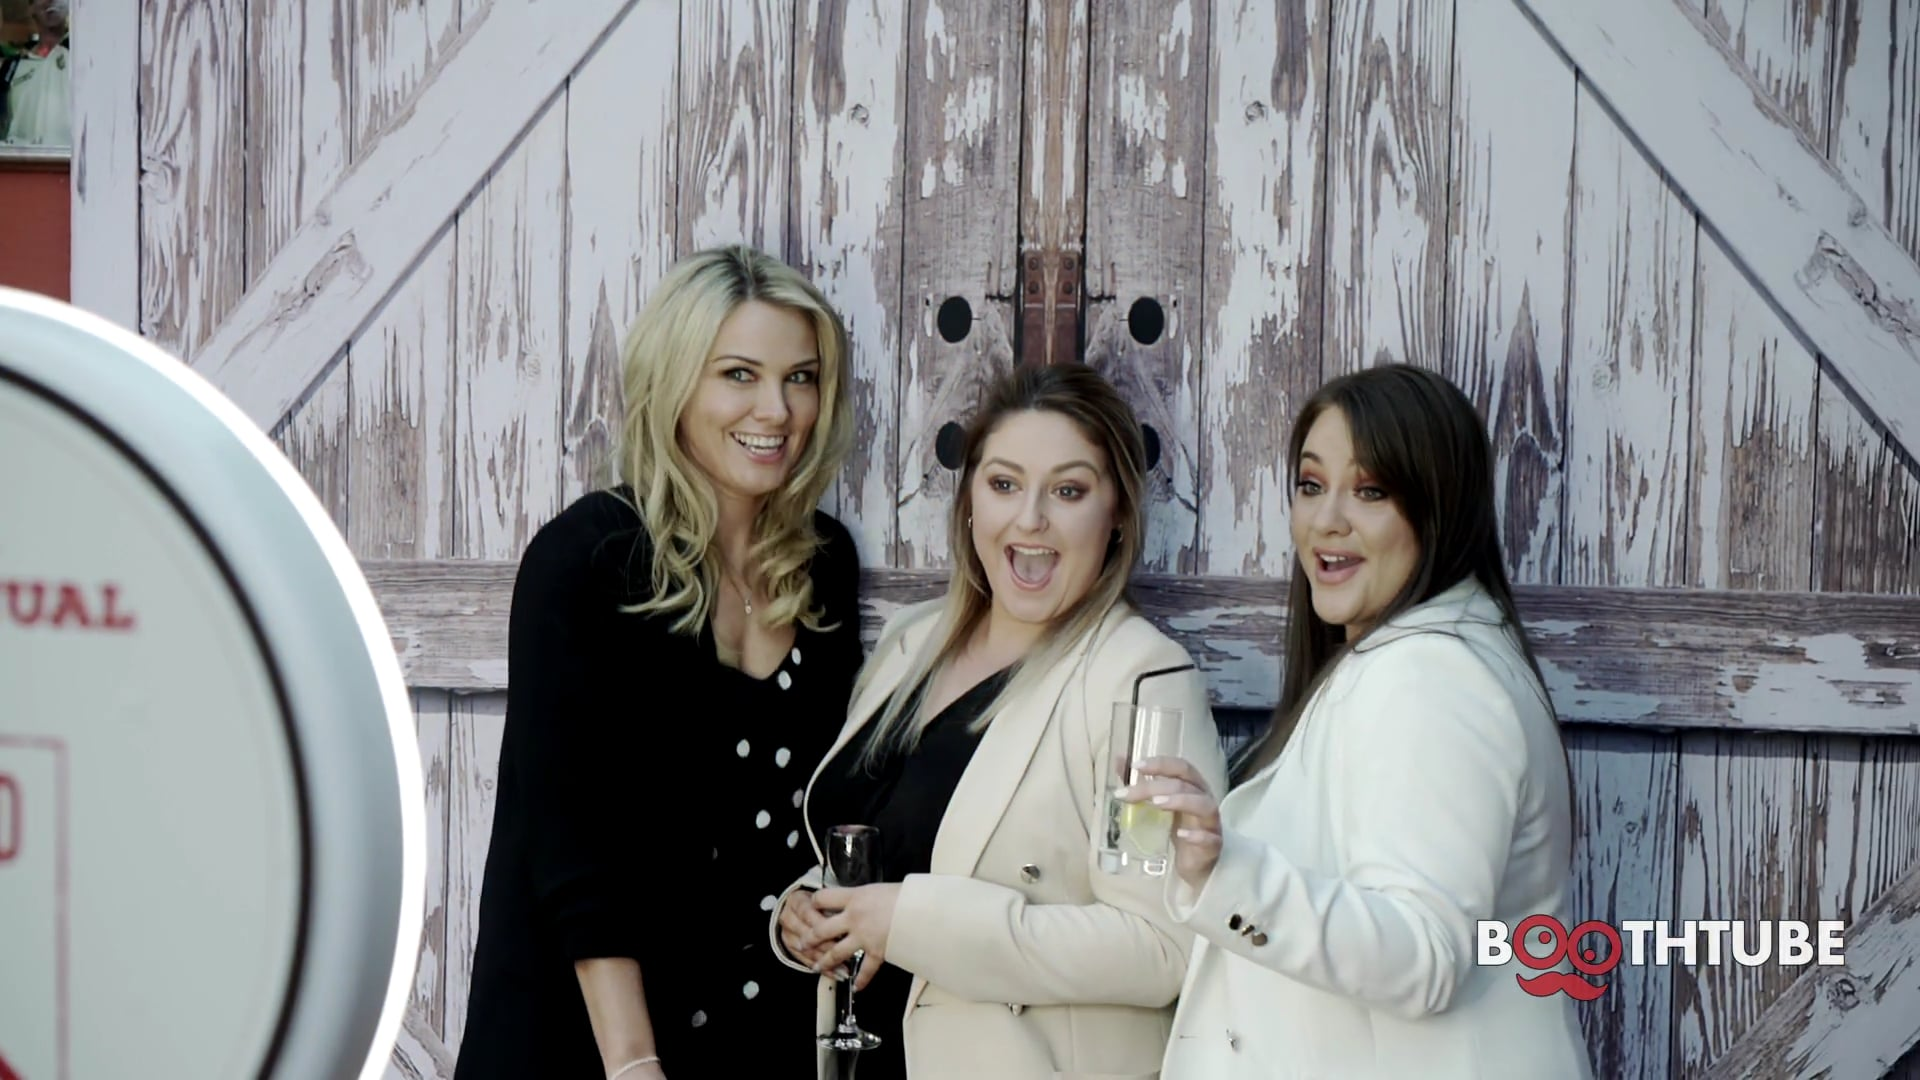 Photo Booth Corporate BBQ Event Activation Video